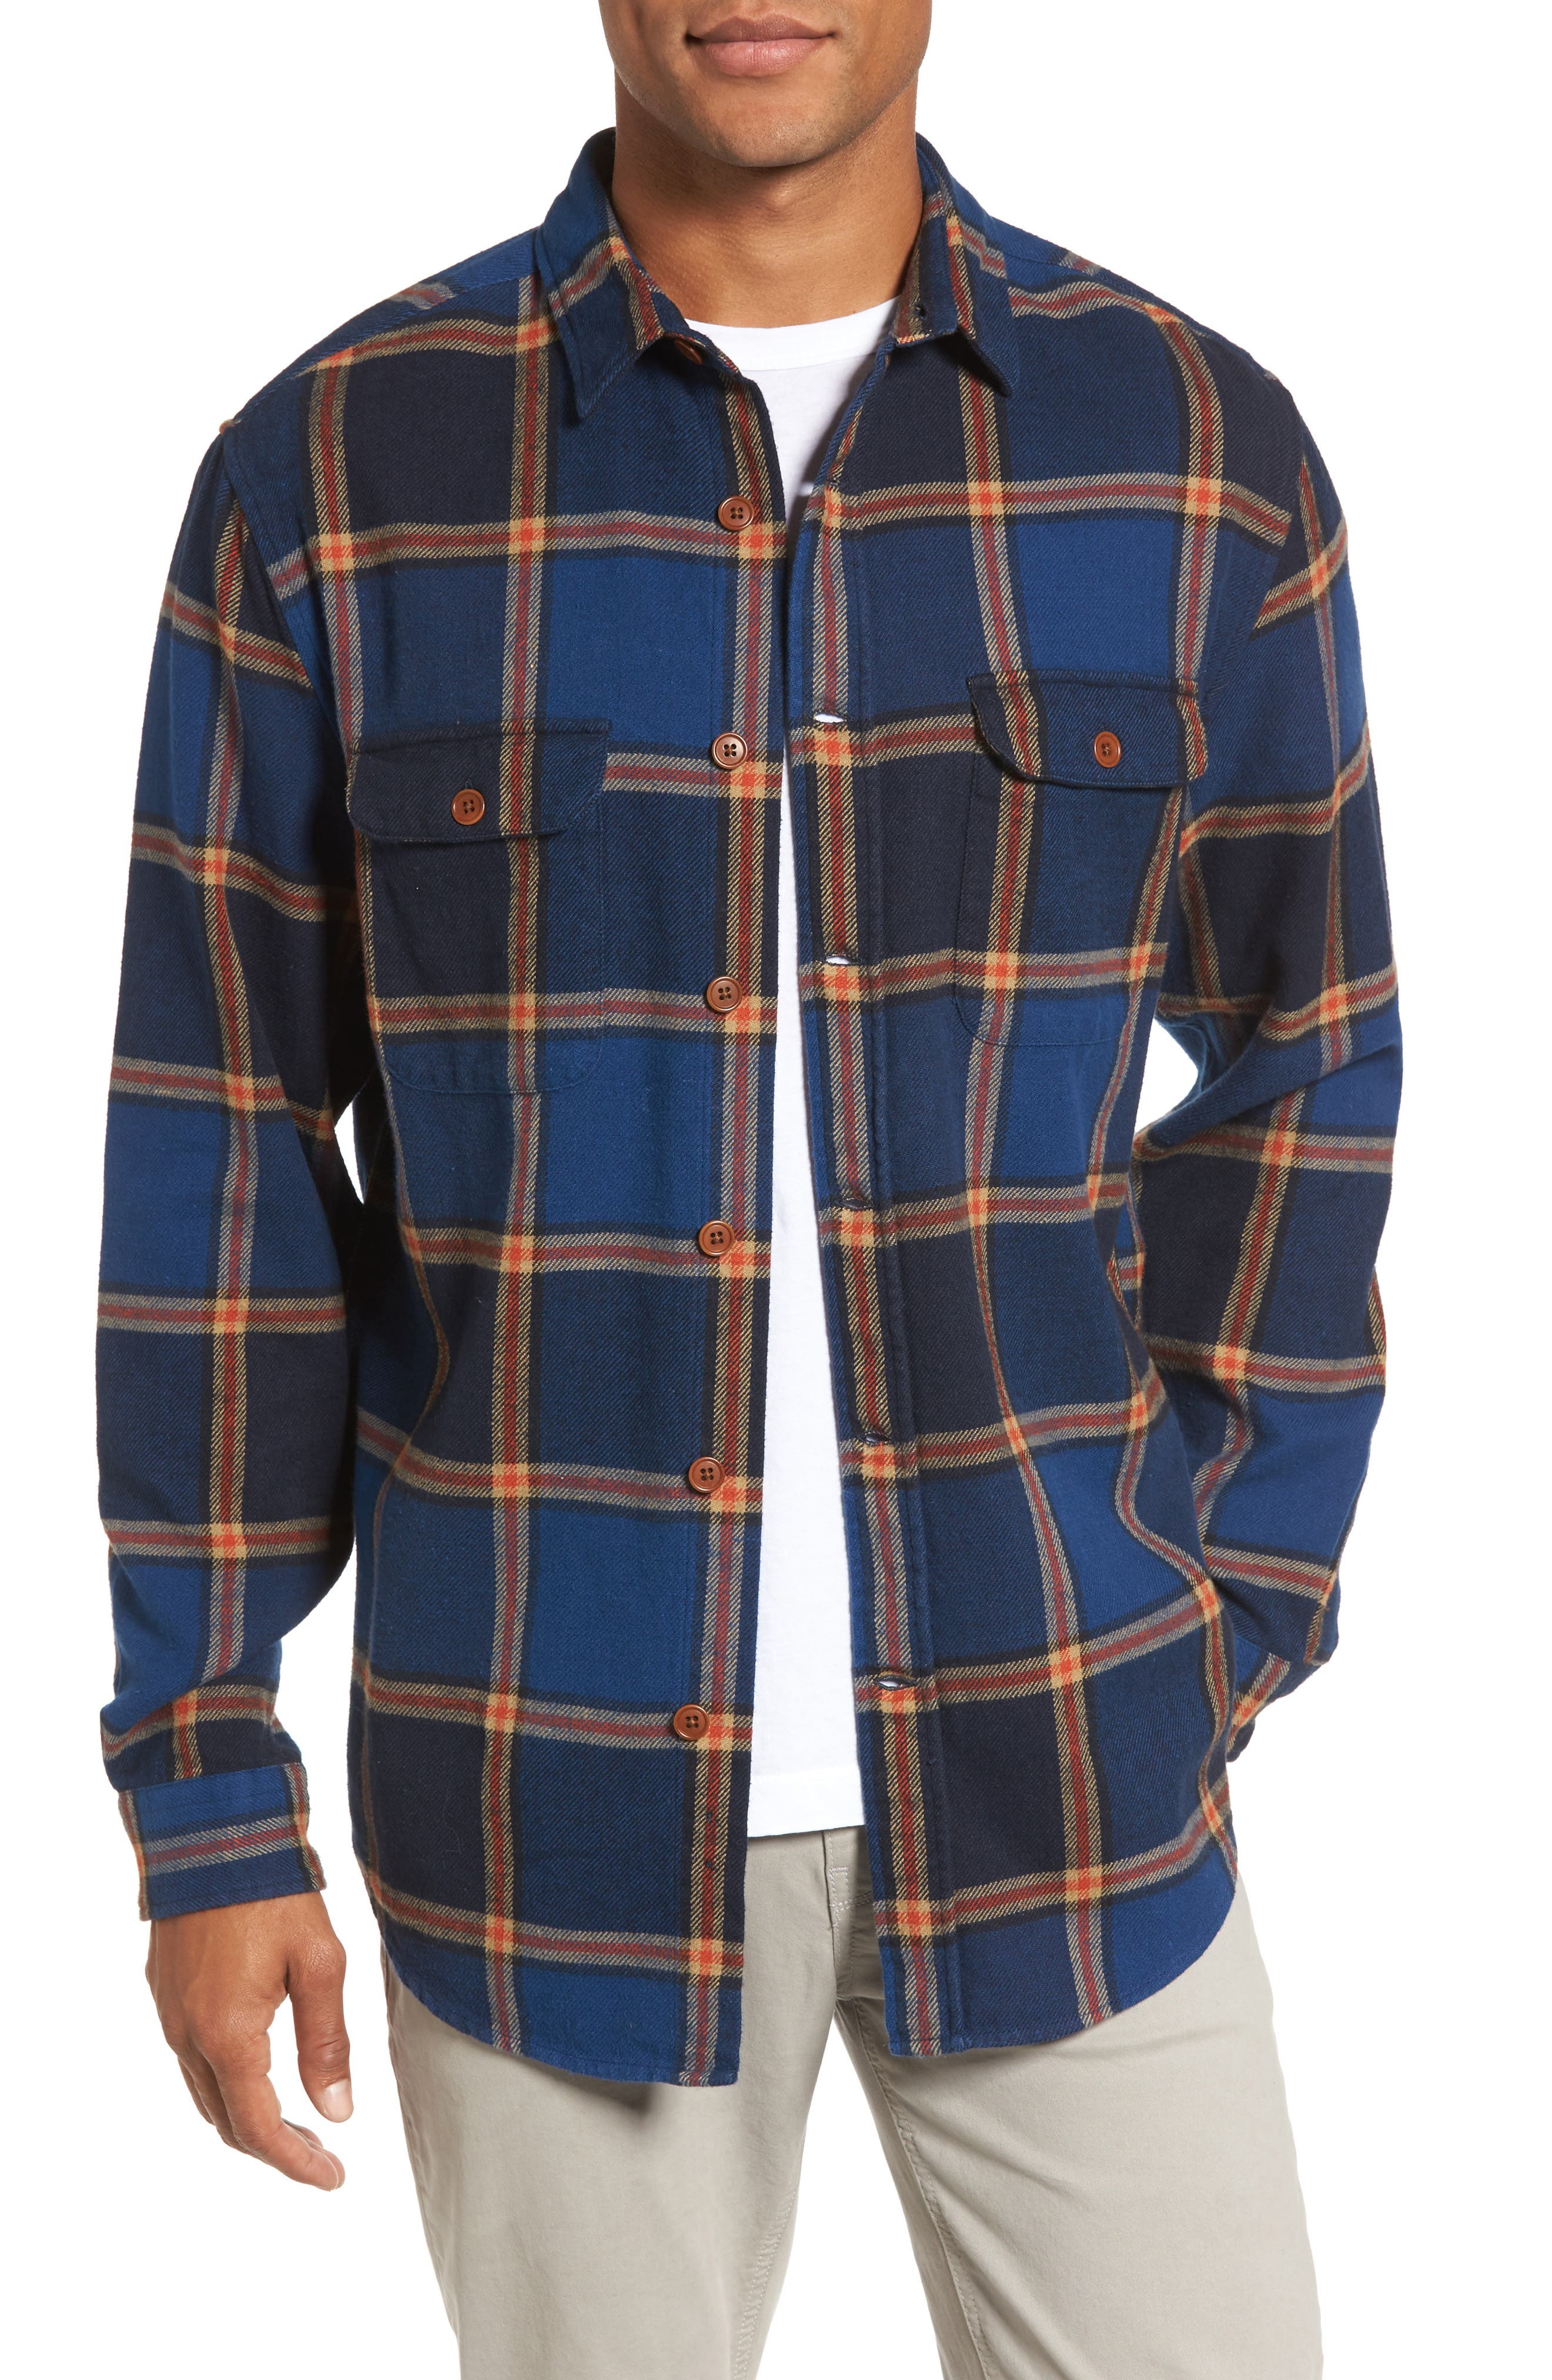 Alternate Image 1 Selected - Gant R1 Check Twill Shirt Jacket